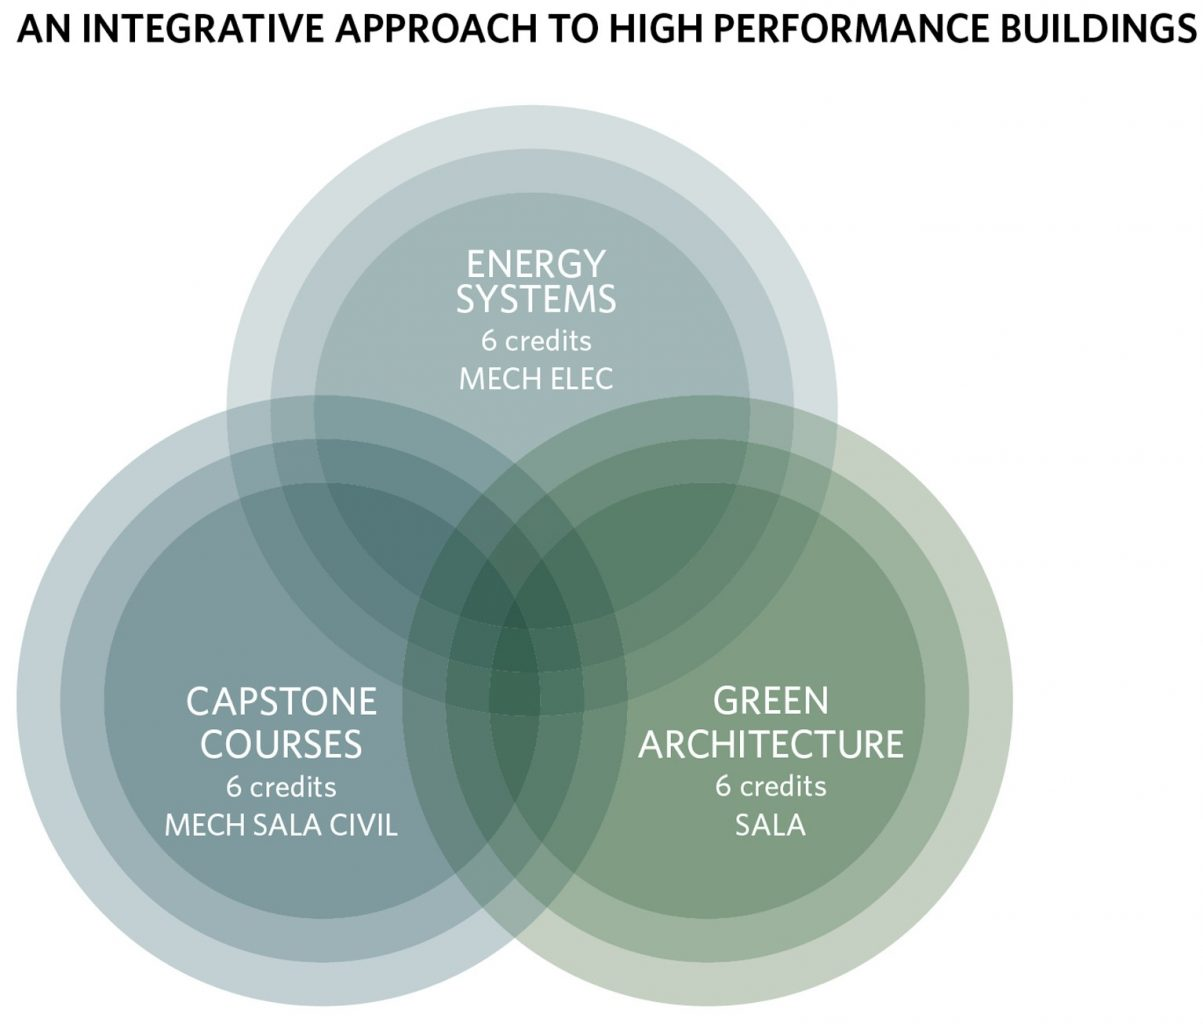 An Integrative Approach to High Performance Buildings